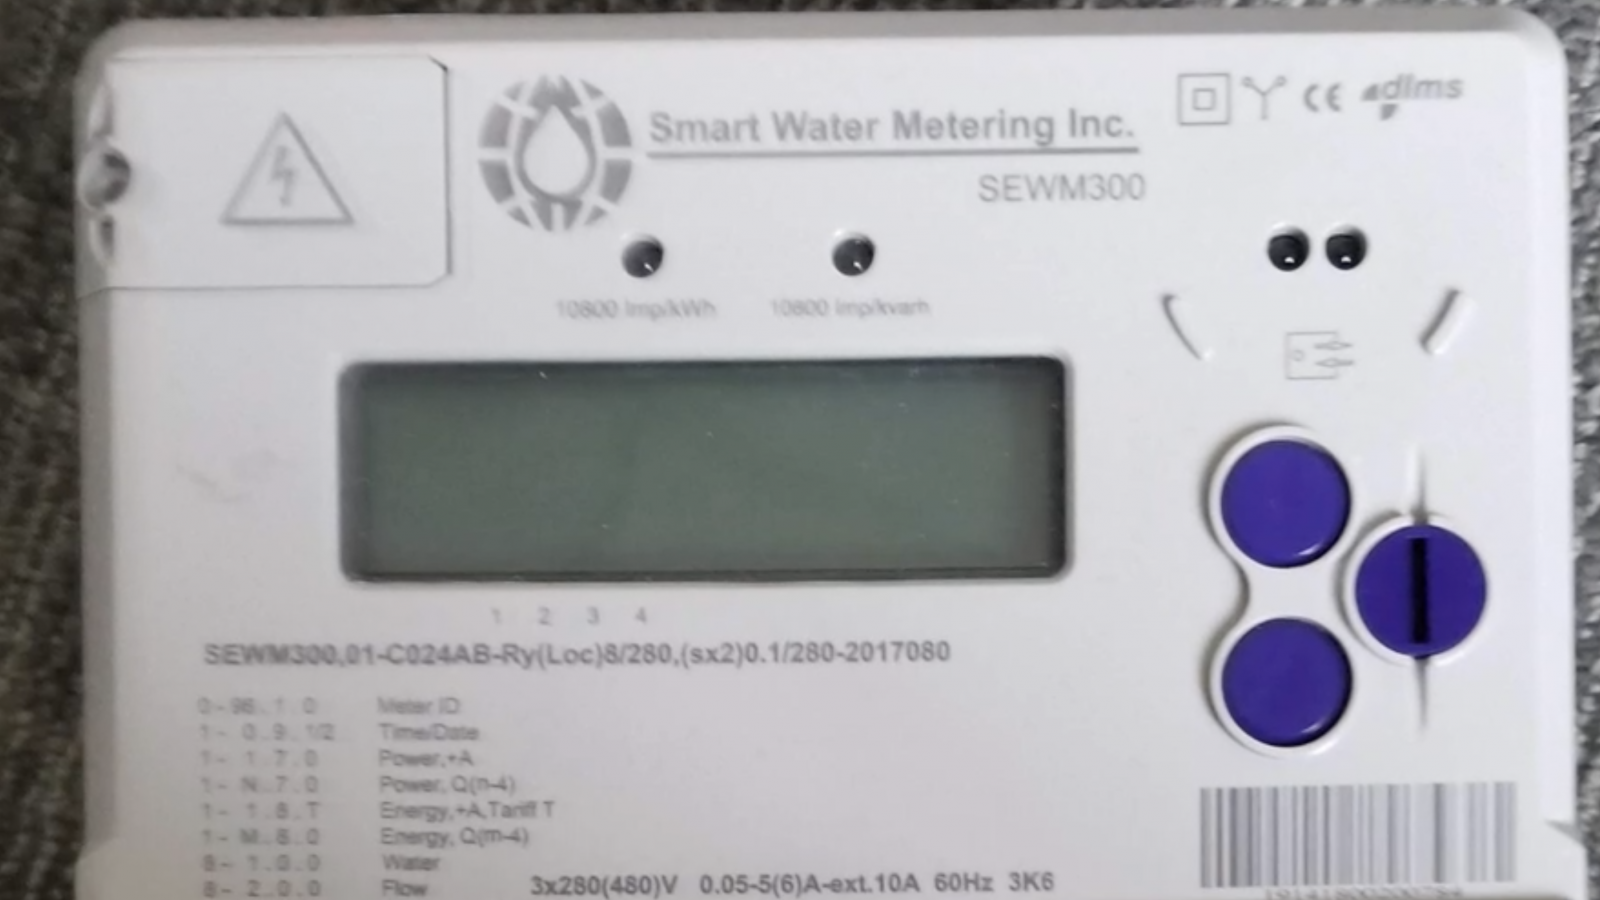 A Smart Water Metering device will allow farmers to retrieve, store and visualize water pump energy measurements without relying on cellular connections.